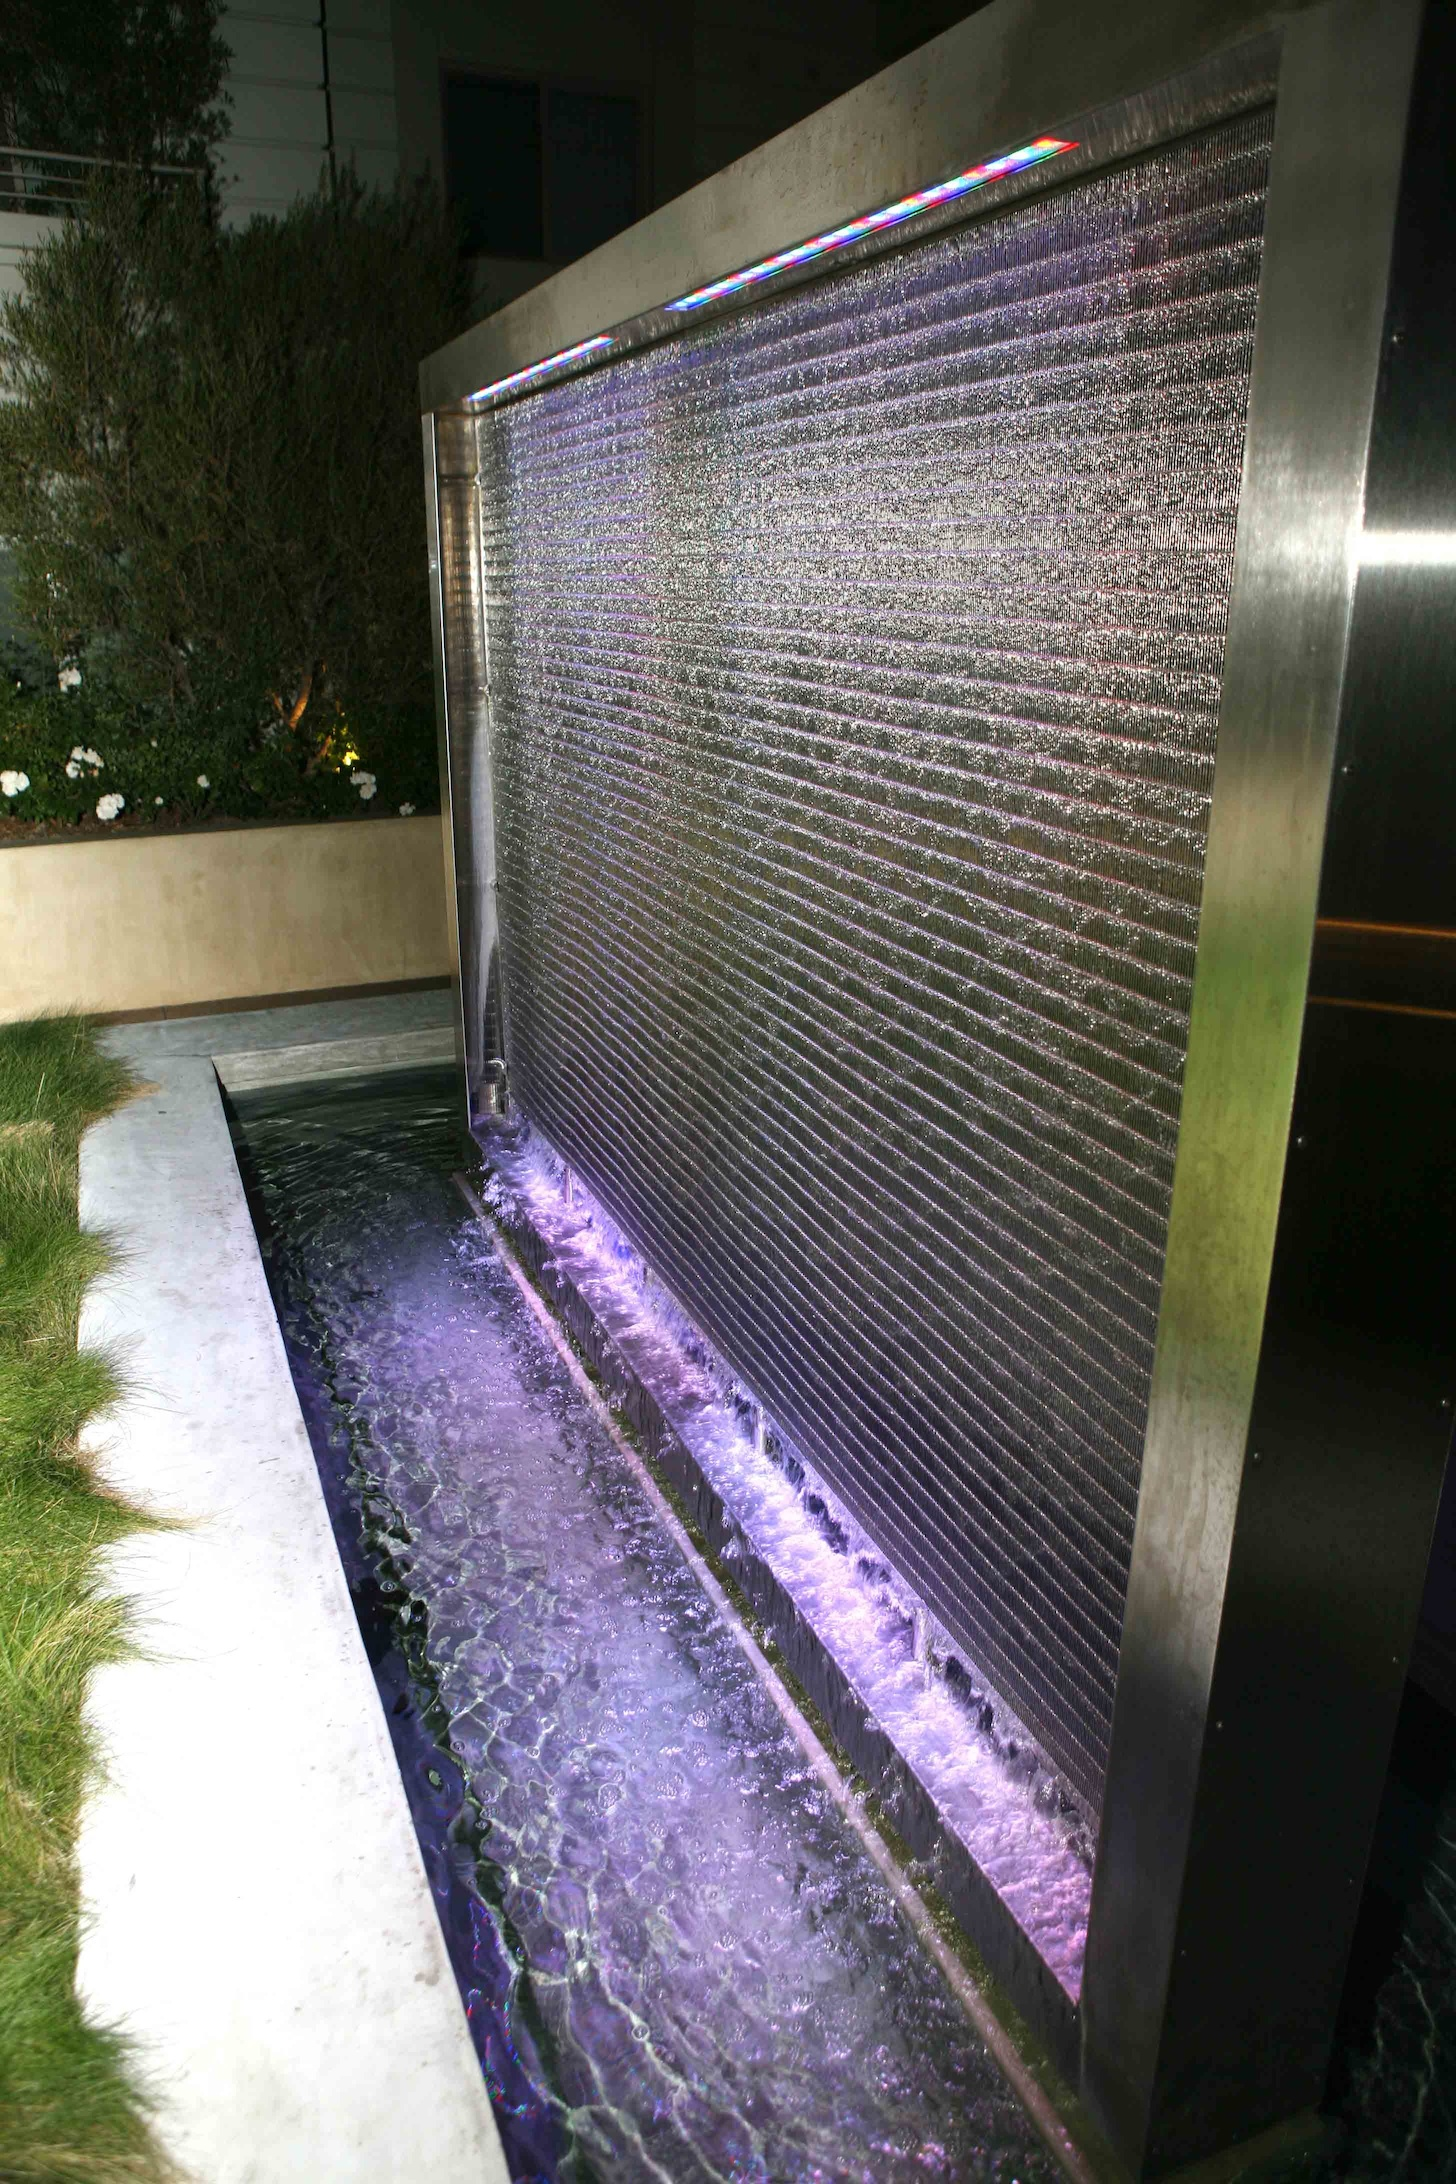 Water cascading down the M13Z-247 wire mesh creates a calming effect.